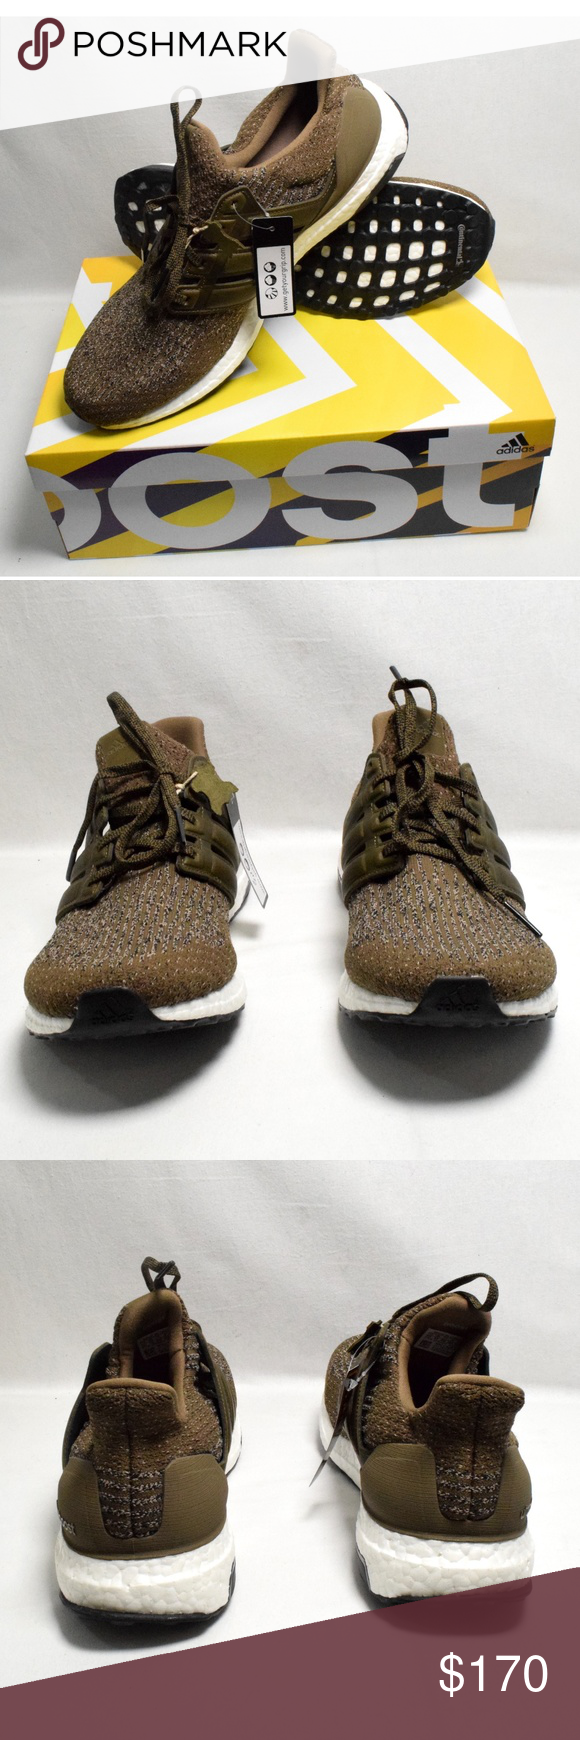 138fe1640 ADIDAS MEN S BOOST ULTRABOOST TRACE OLIVE 11.5 Adidas Ultra Boost 3.0 LTD Trace  Olive Cargo S82018 Mens Size 11.5 Leather Cages. adidas Shoes Sneakers